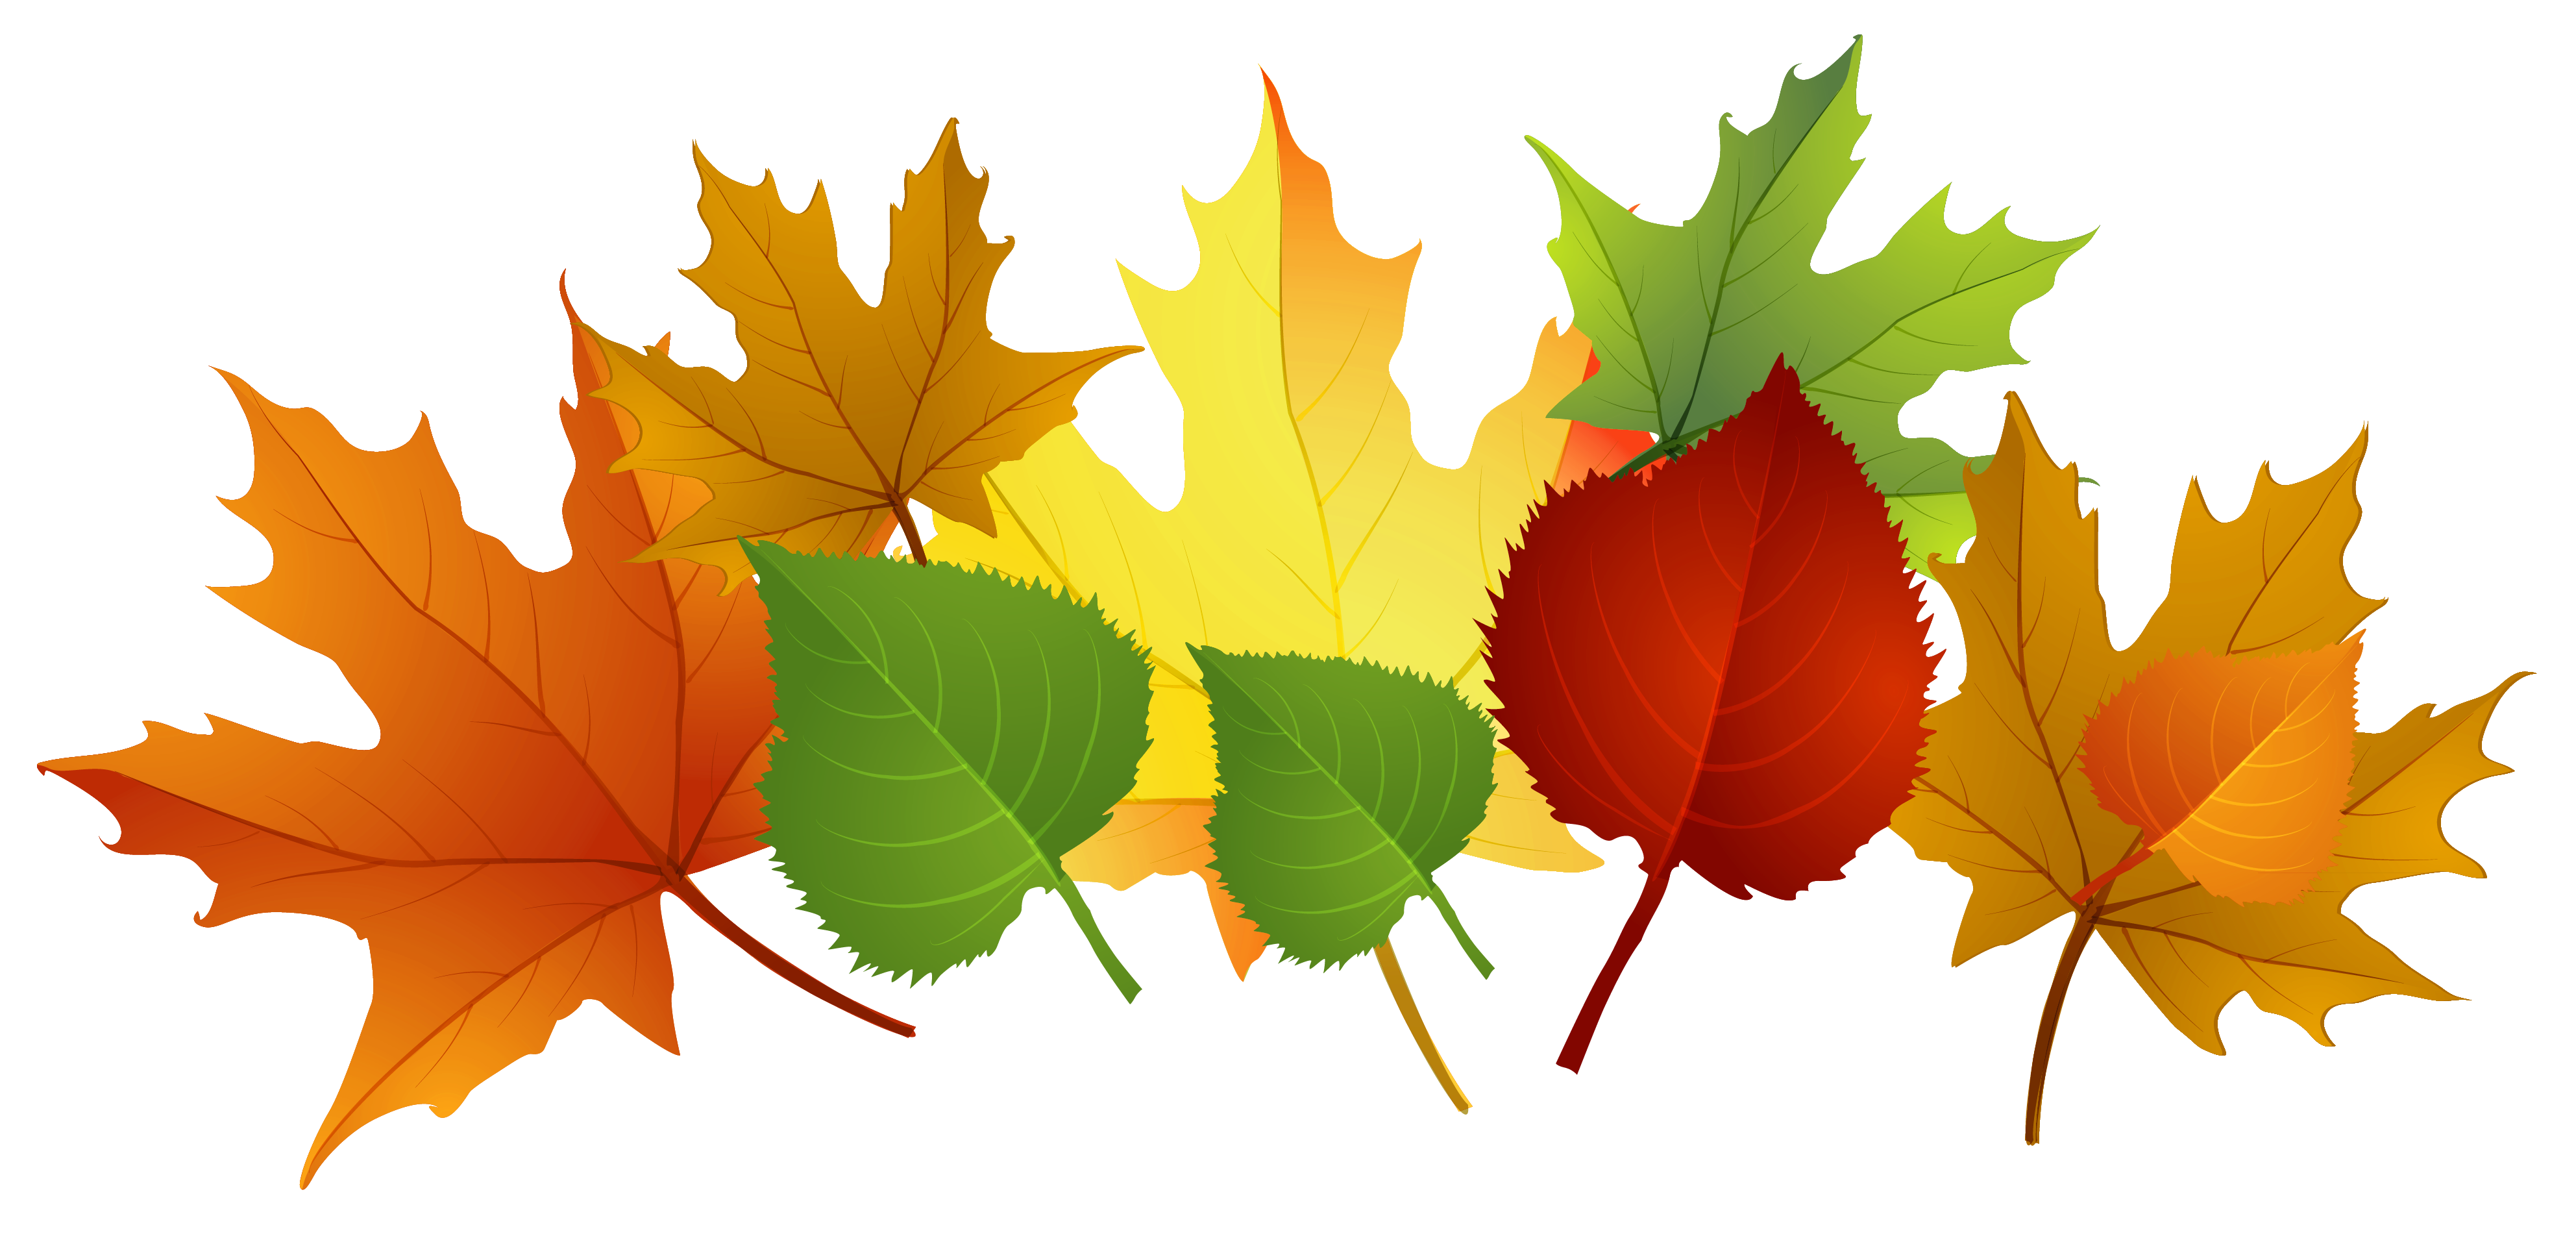 Fall clipart #3, Download drawings